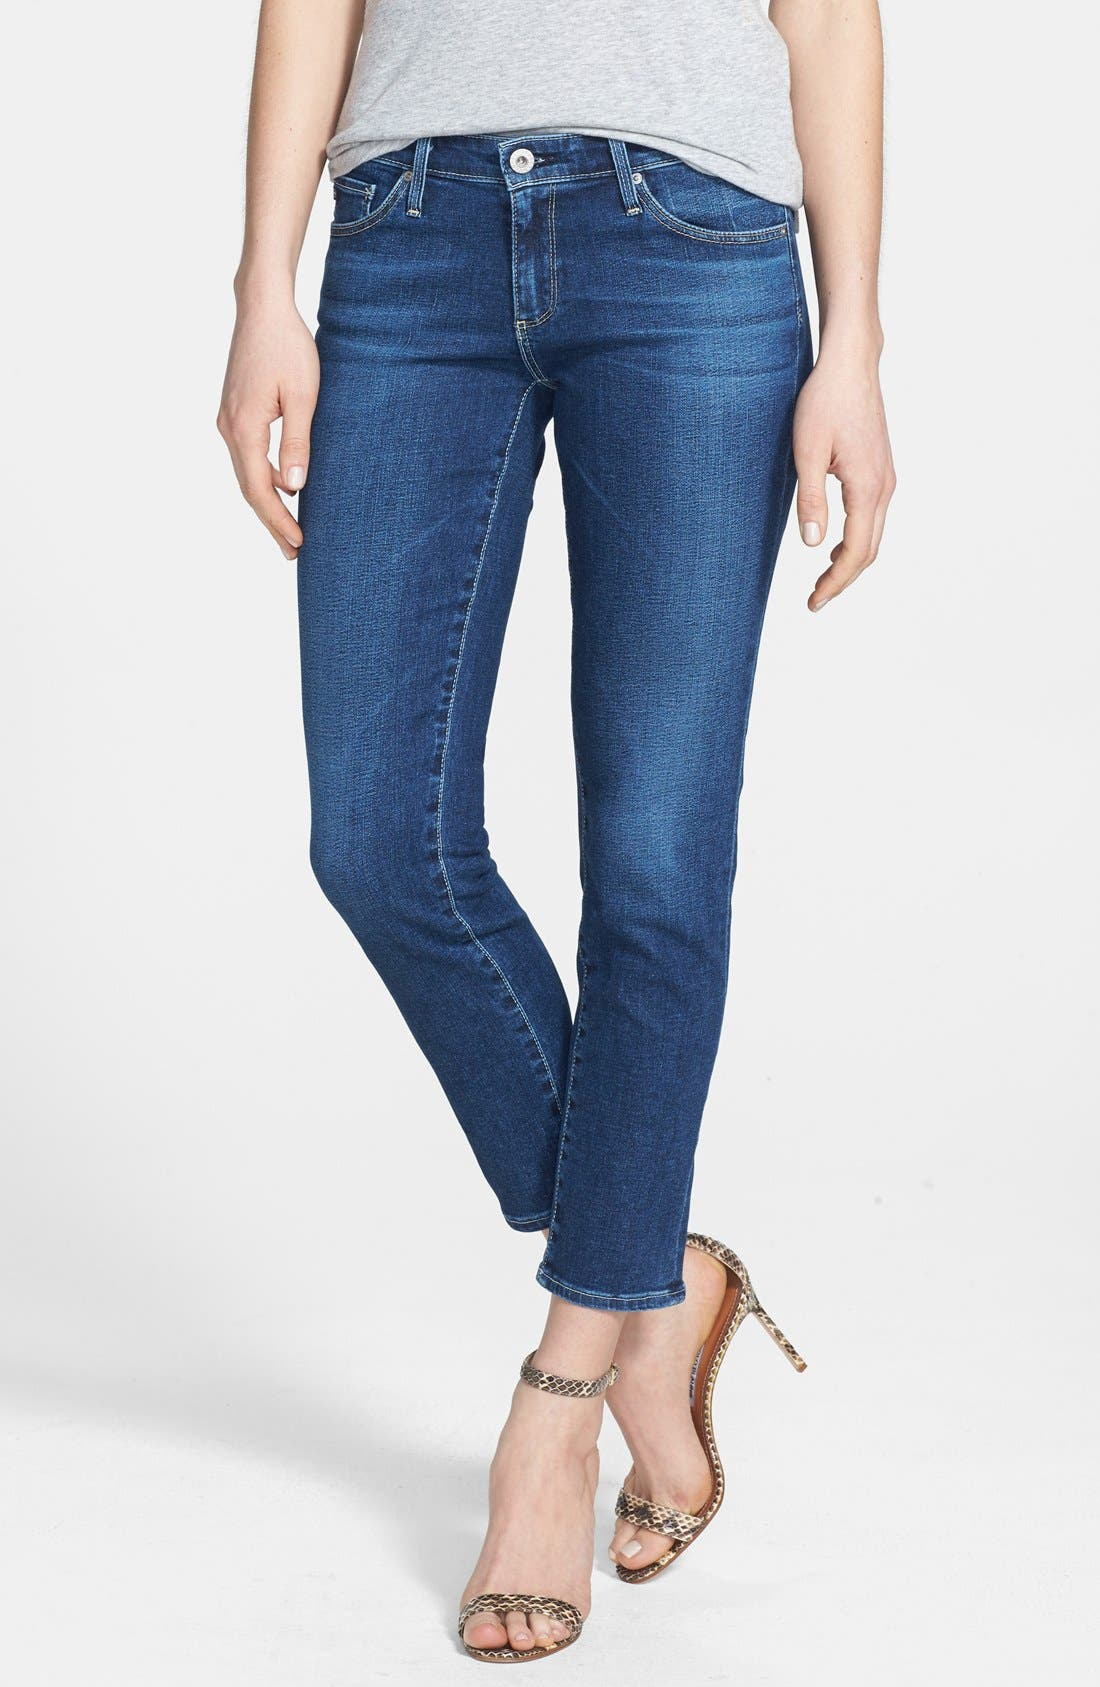 Alternate Image 1 Selected - AG Jeans 'The Stilt' Crop Skinny Stretch Jeans (Rio Rio)